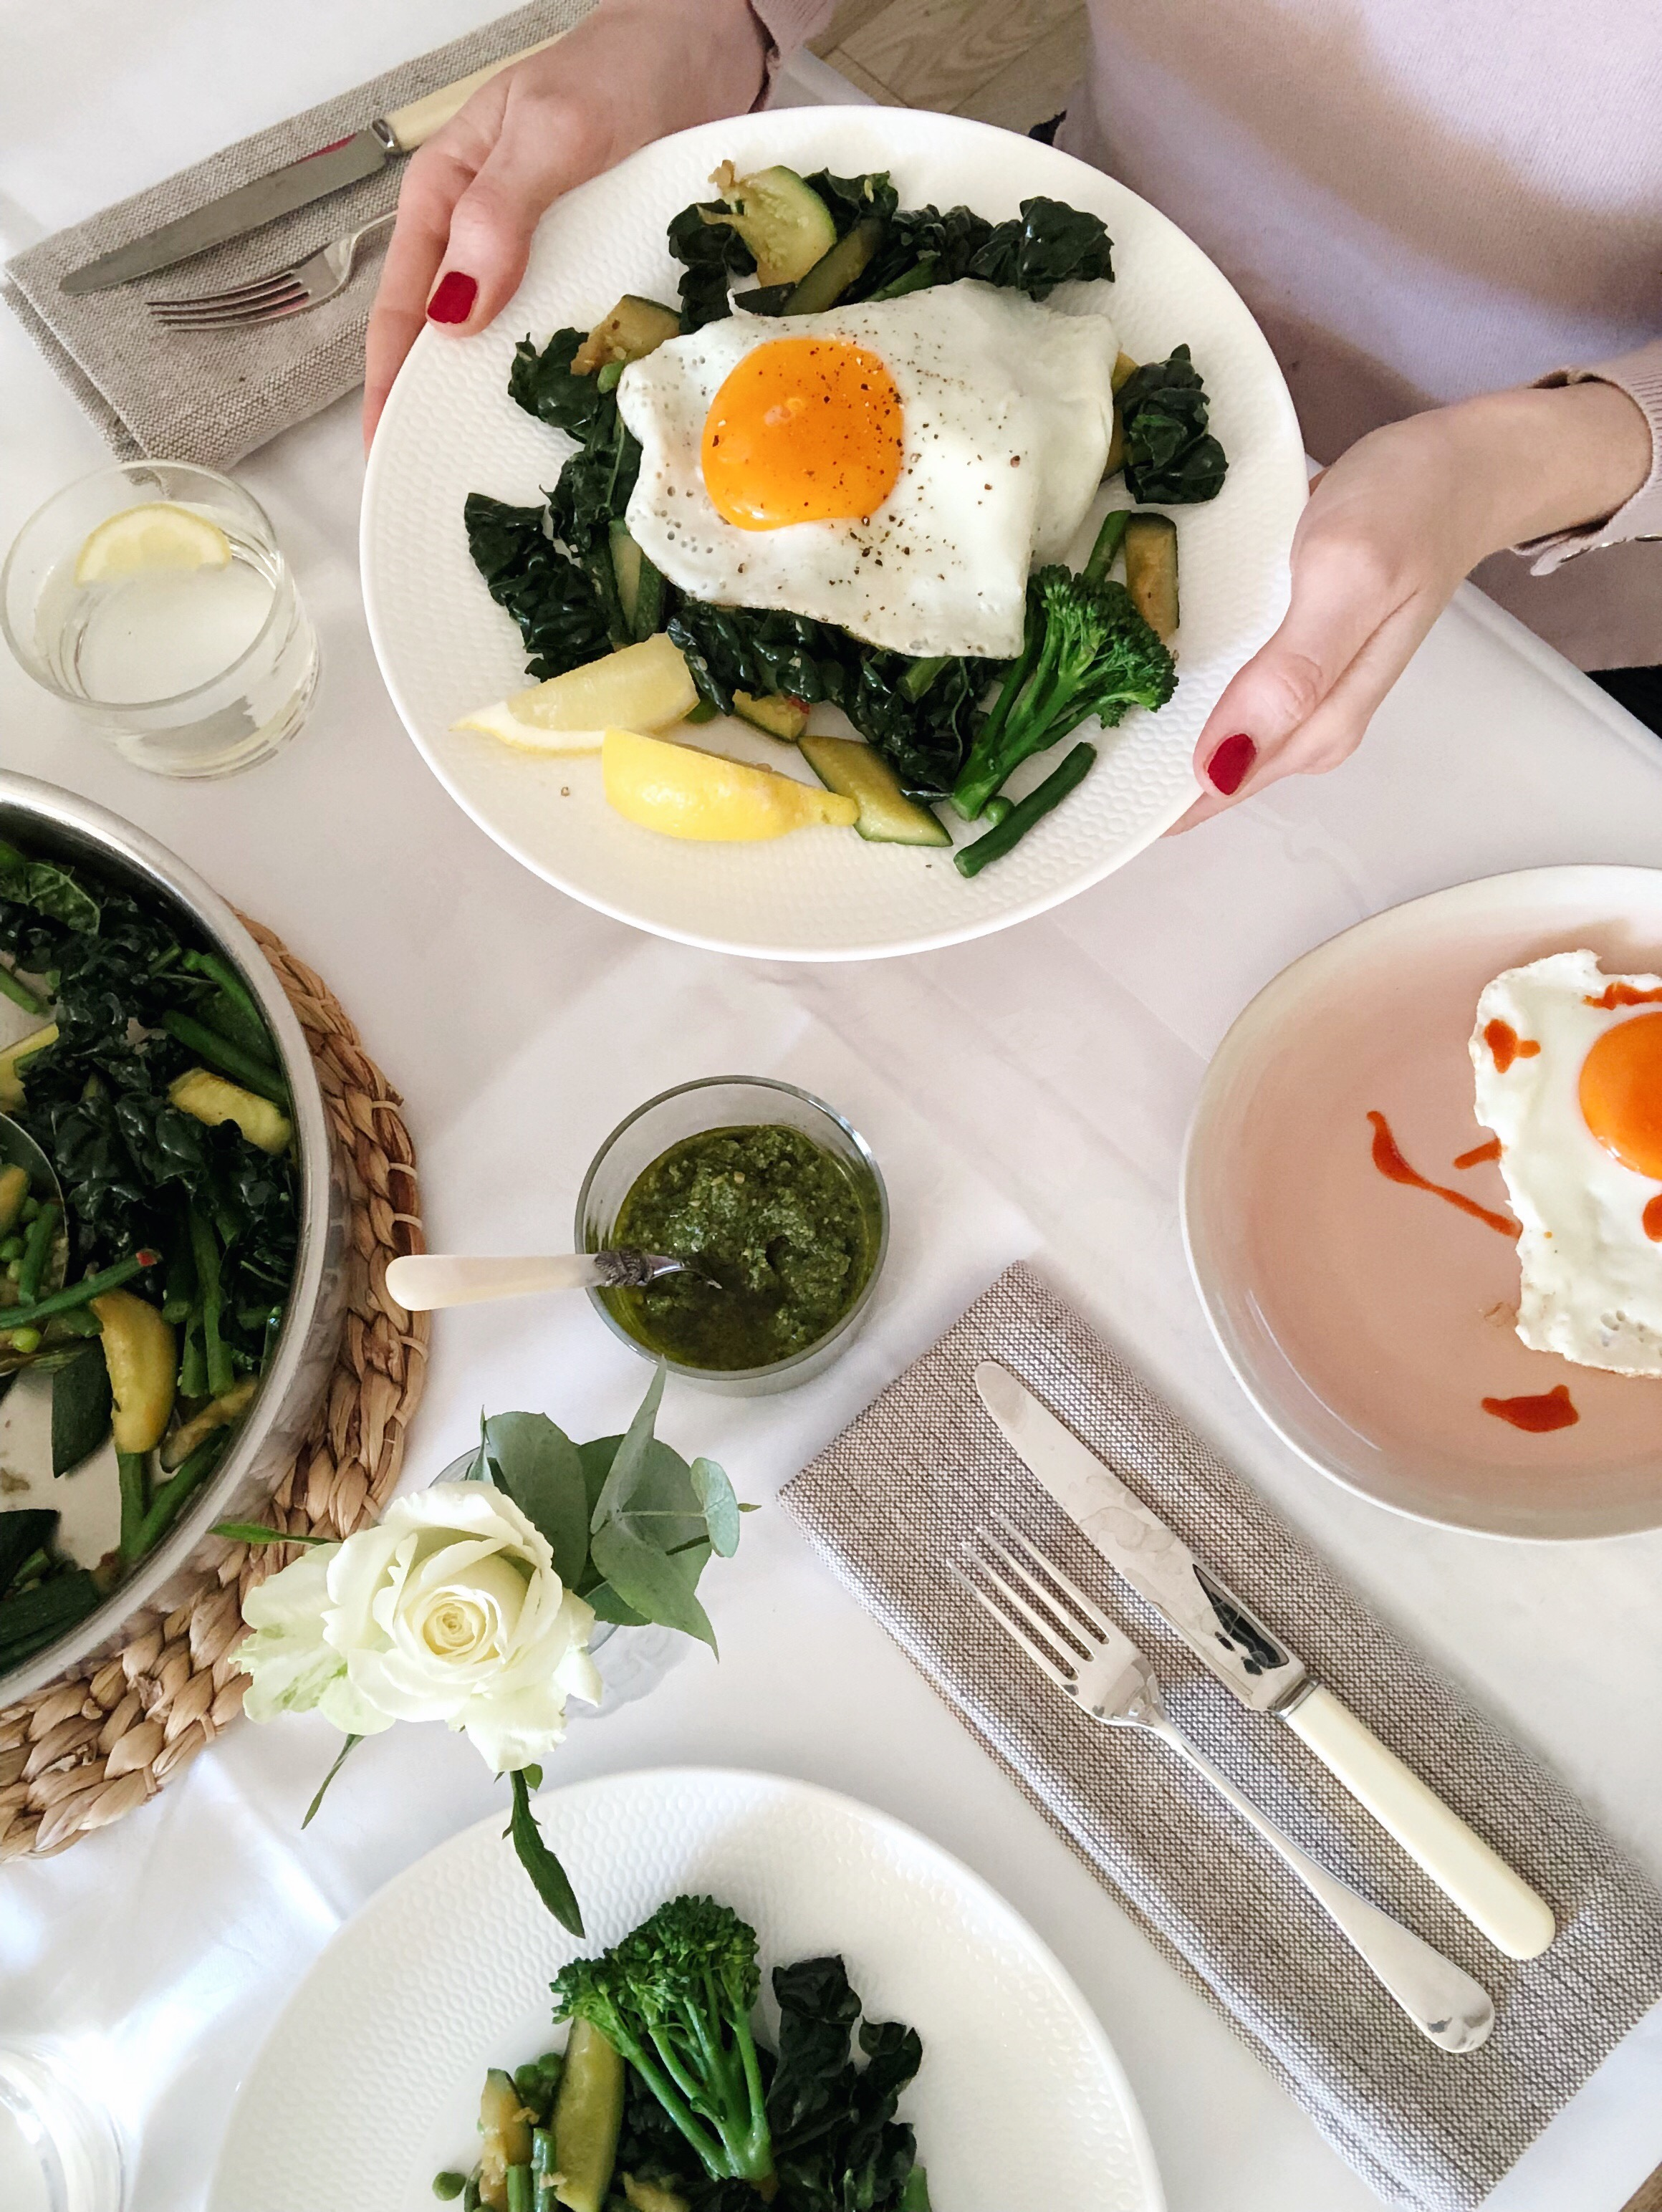 sauteéd greens with fried eggs inspired by Prue Leith - Desert Island Dishes - Margie Nomura